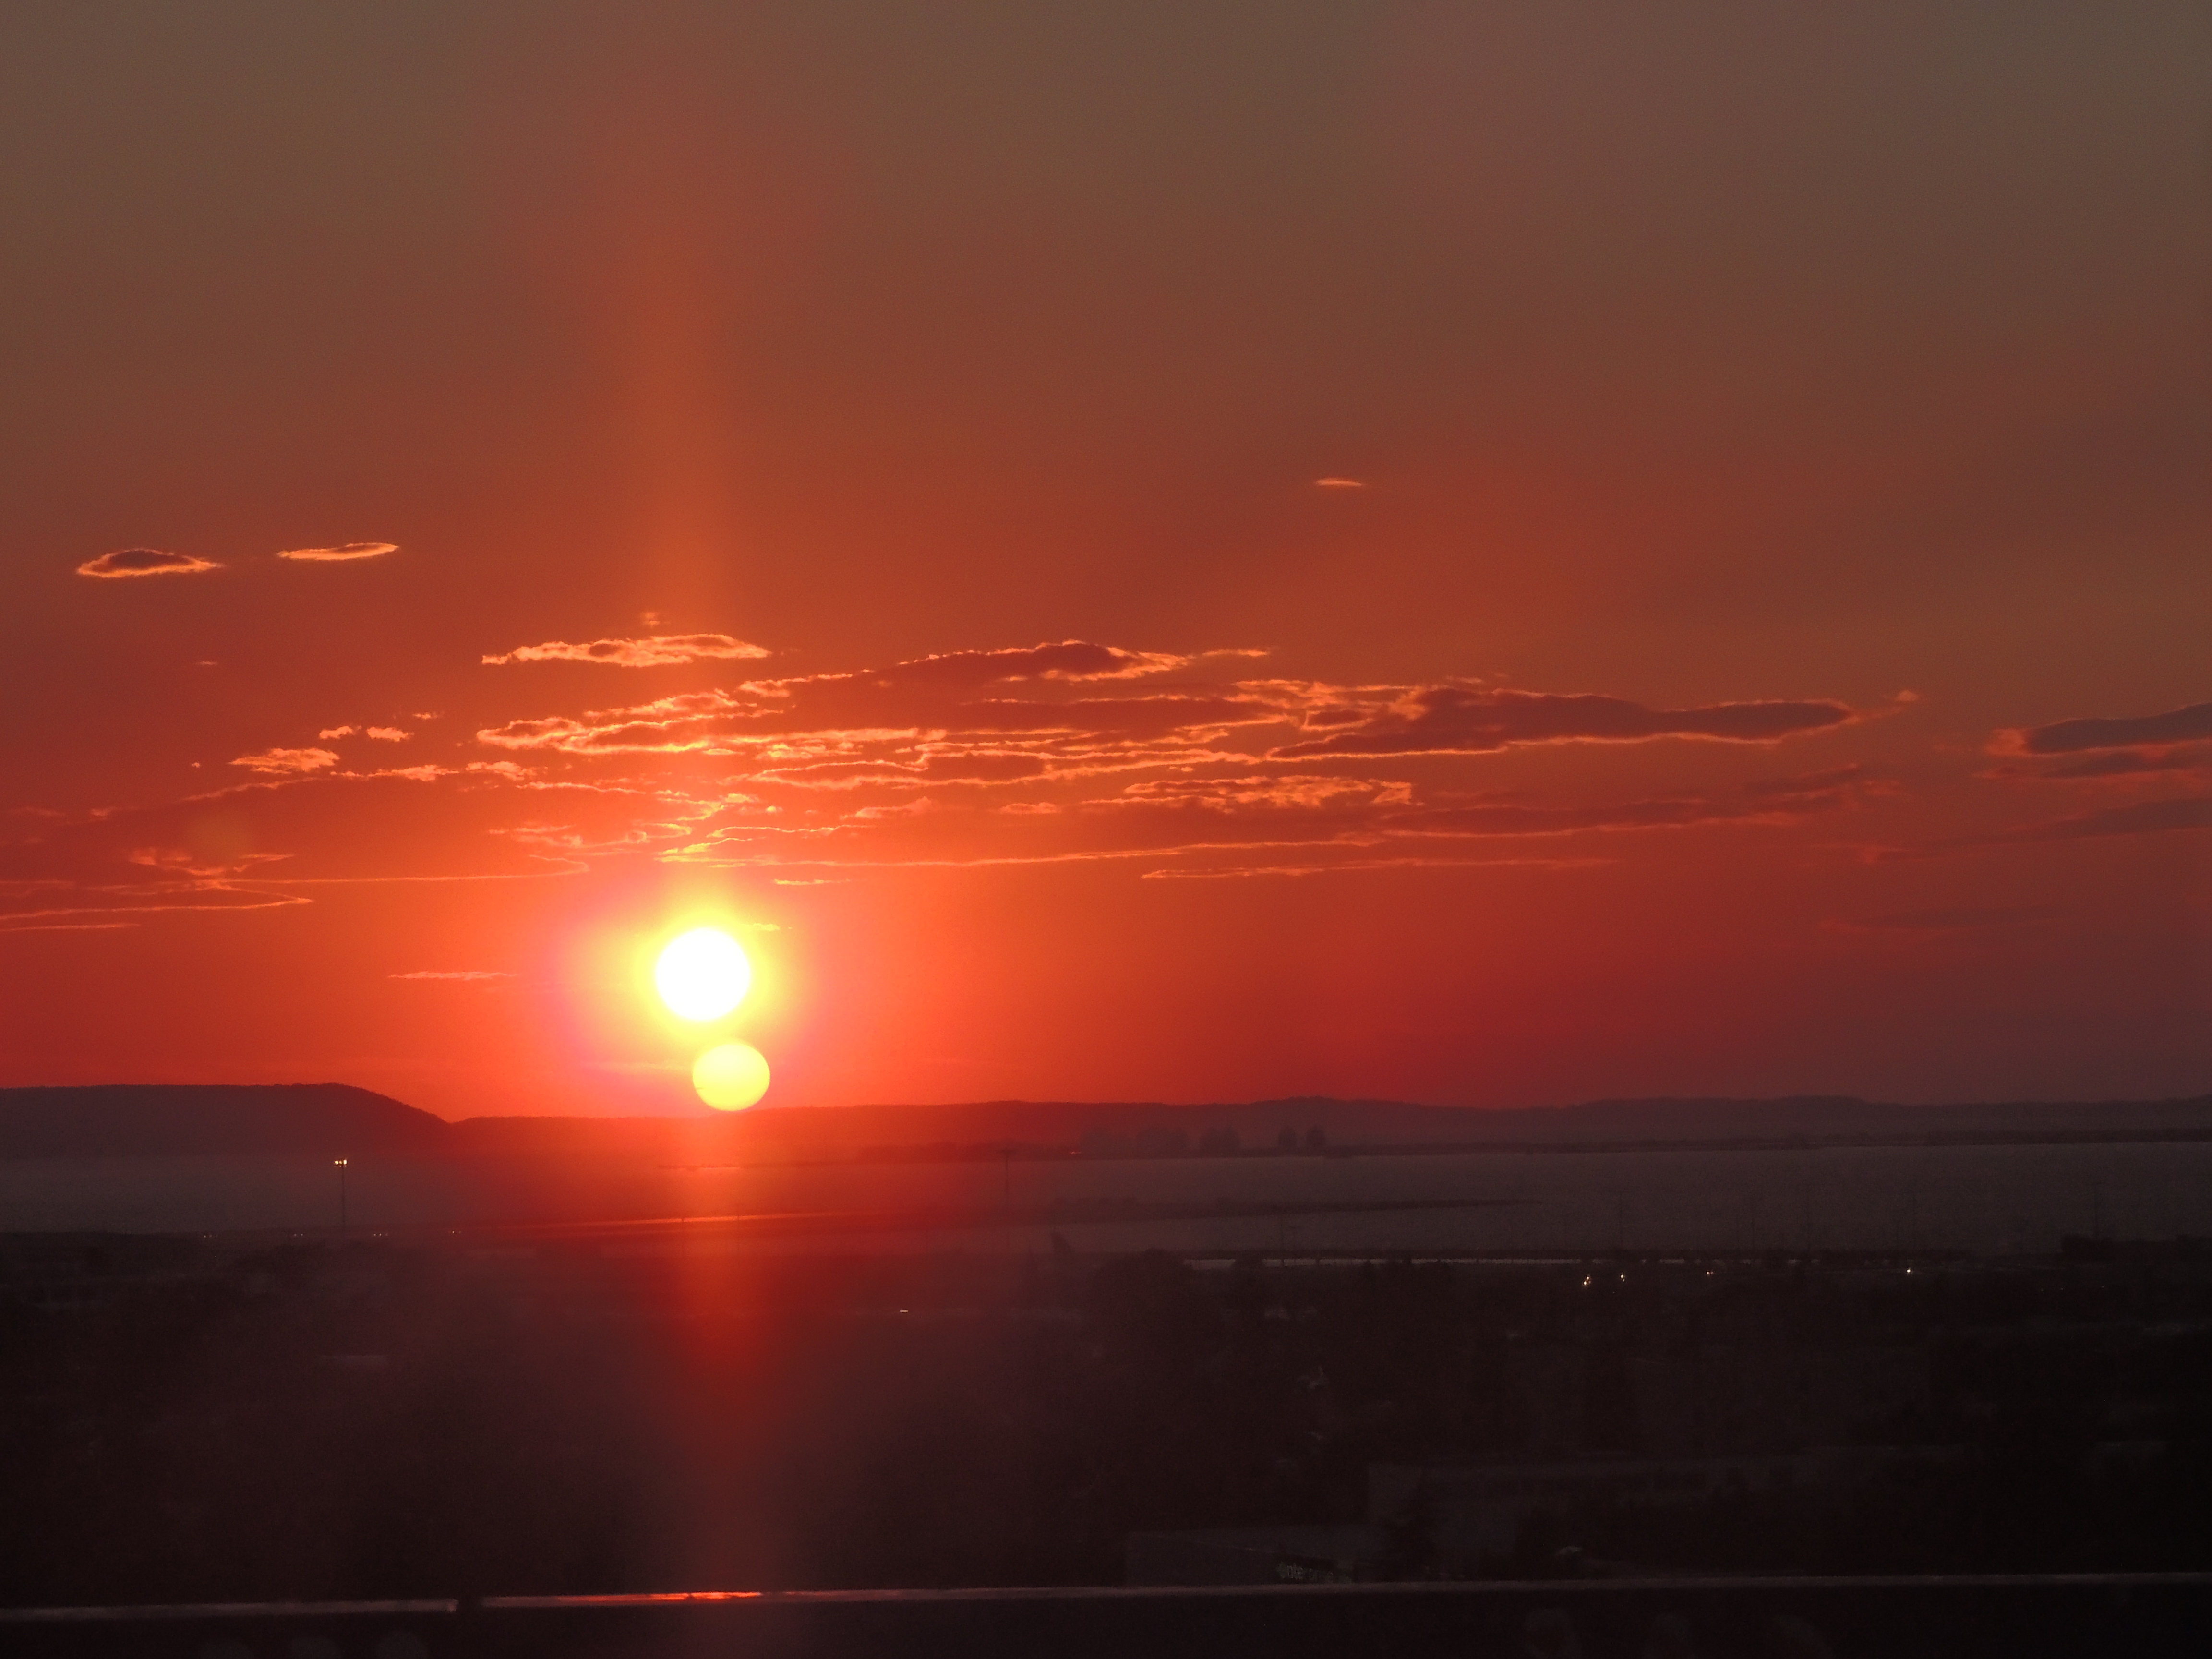 Taken from the train: The sun setting over Arles